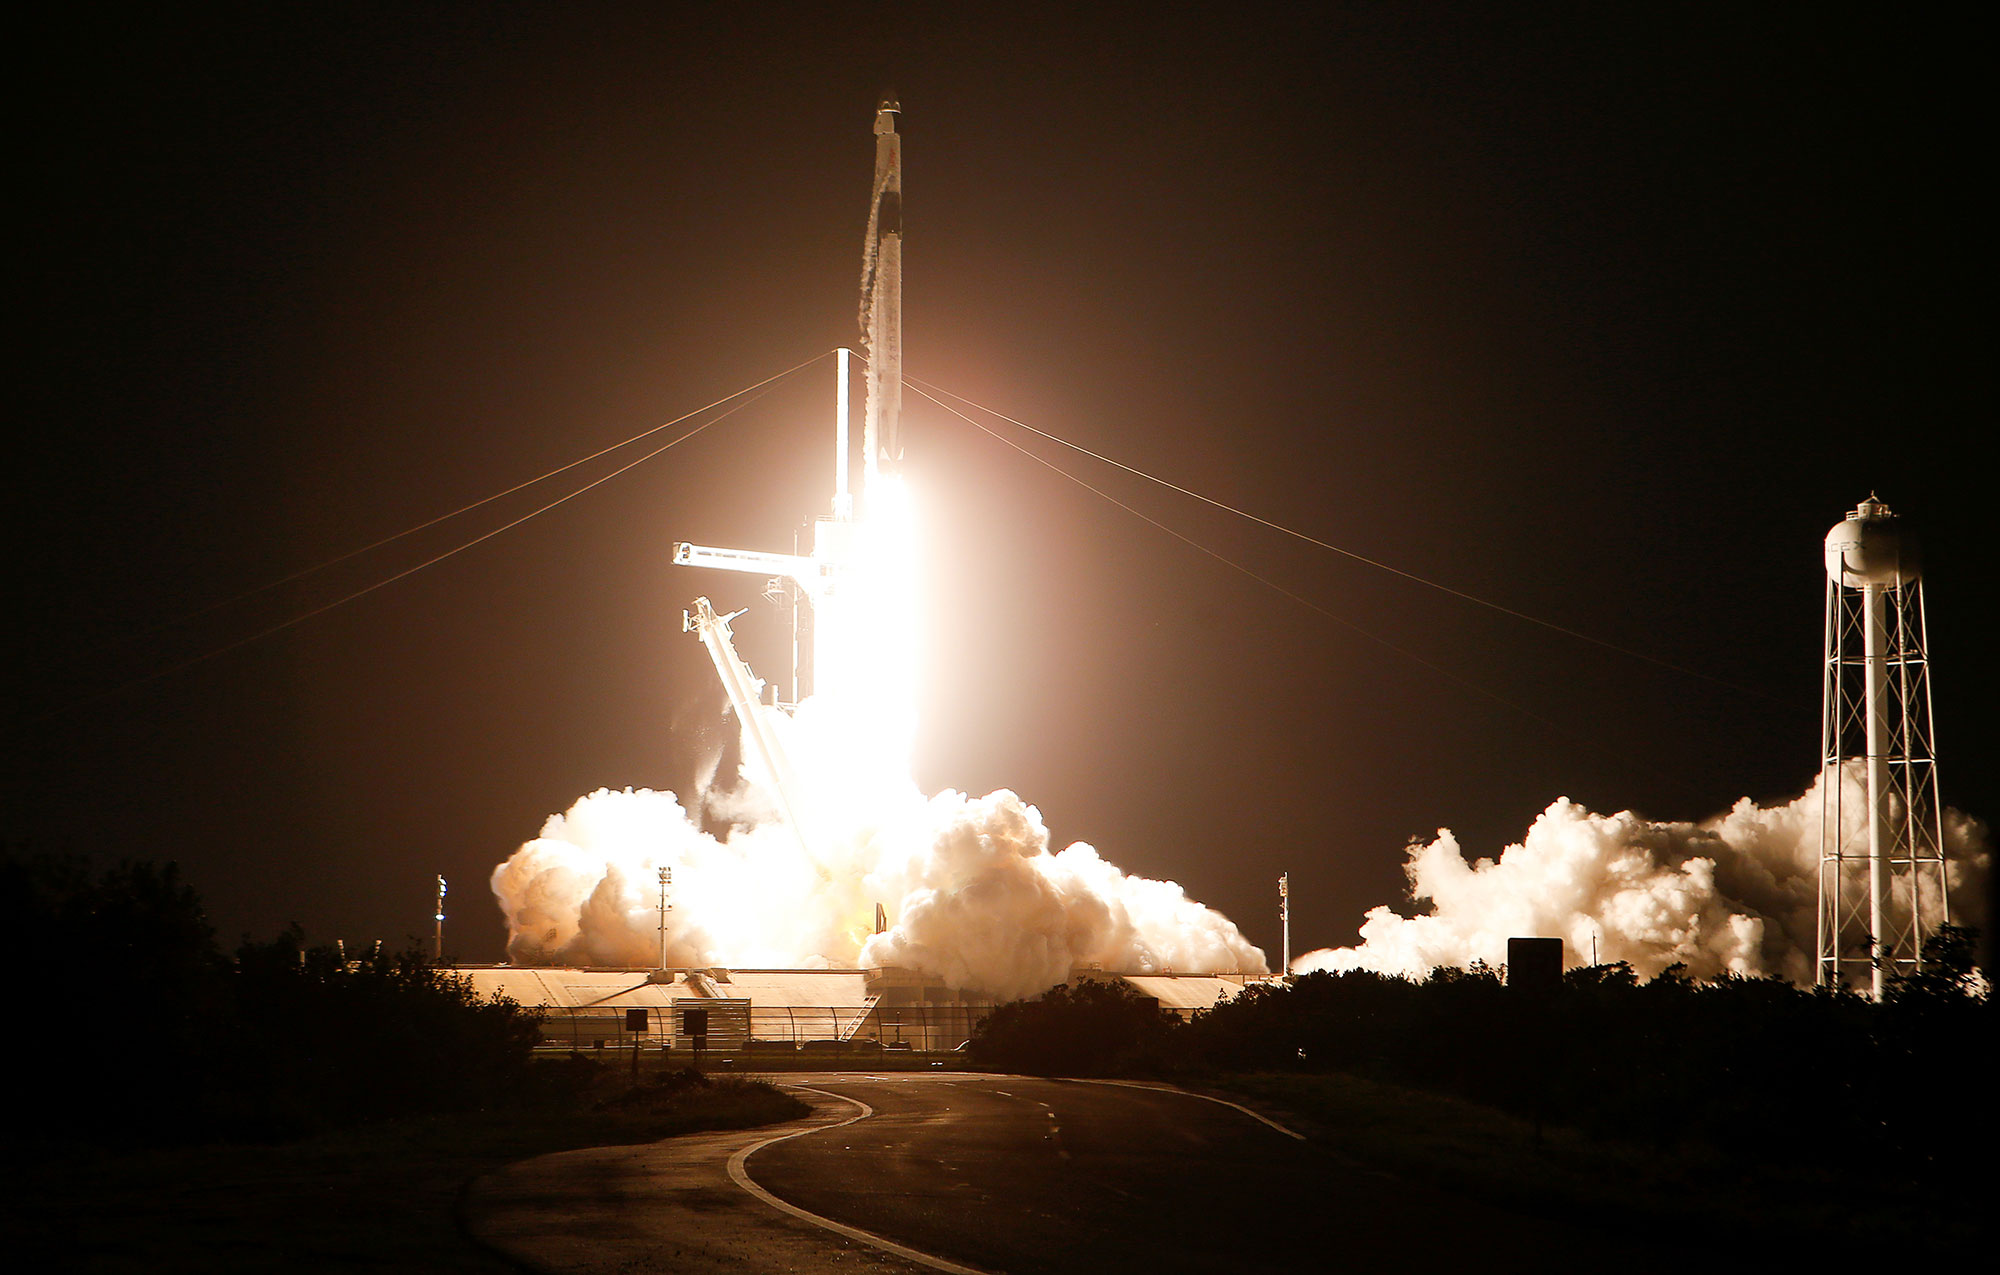 2021-04-23T151542Z_263585362_RC2R1N9Z5NF5_RTRMADP_3_SPACE-EXPLORATION-SPACEX